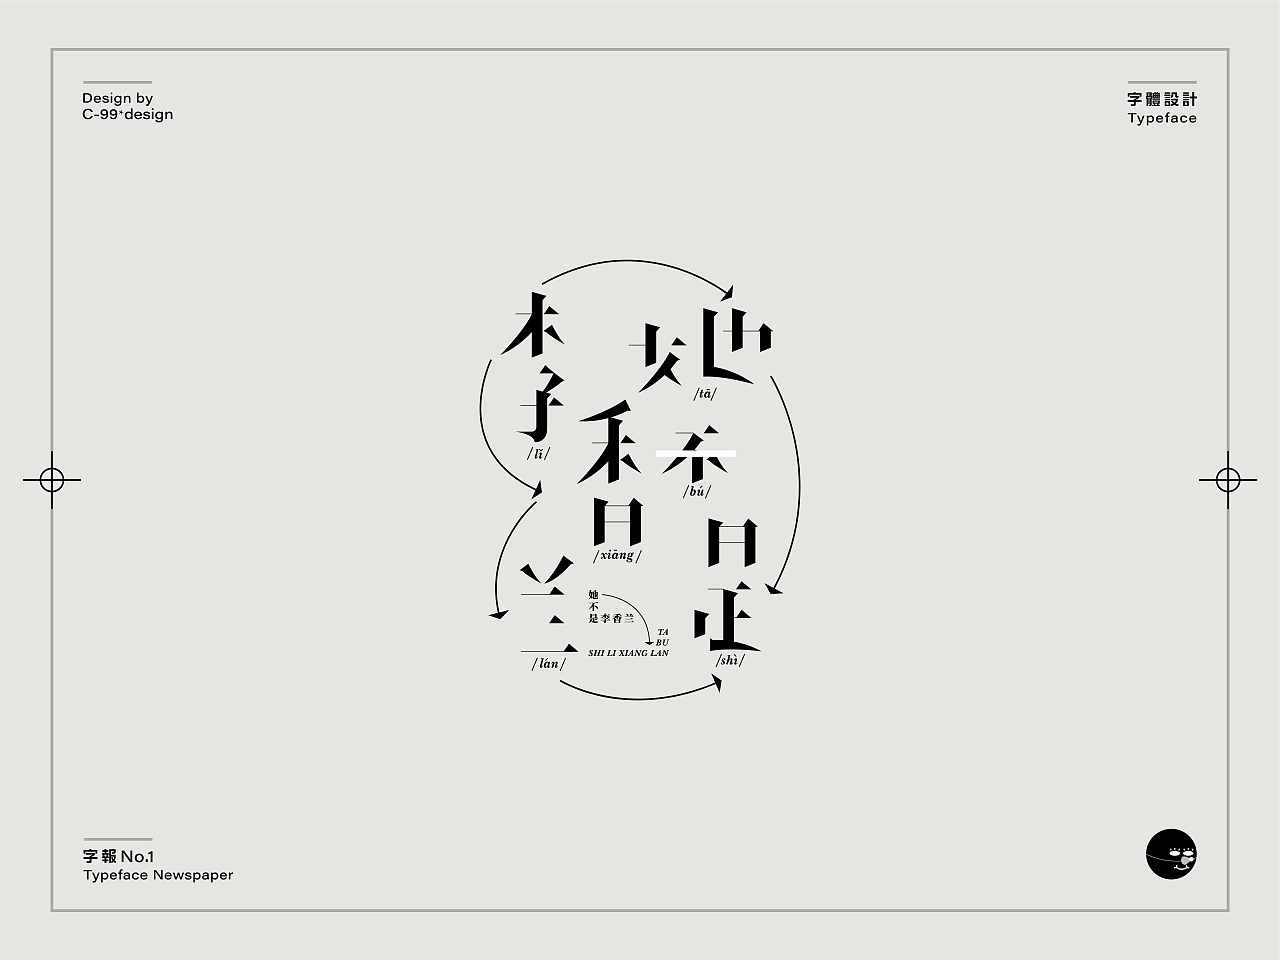 Chinese Creative Font Design-Font Poster Design on Epidemic Situation